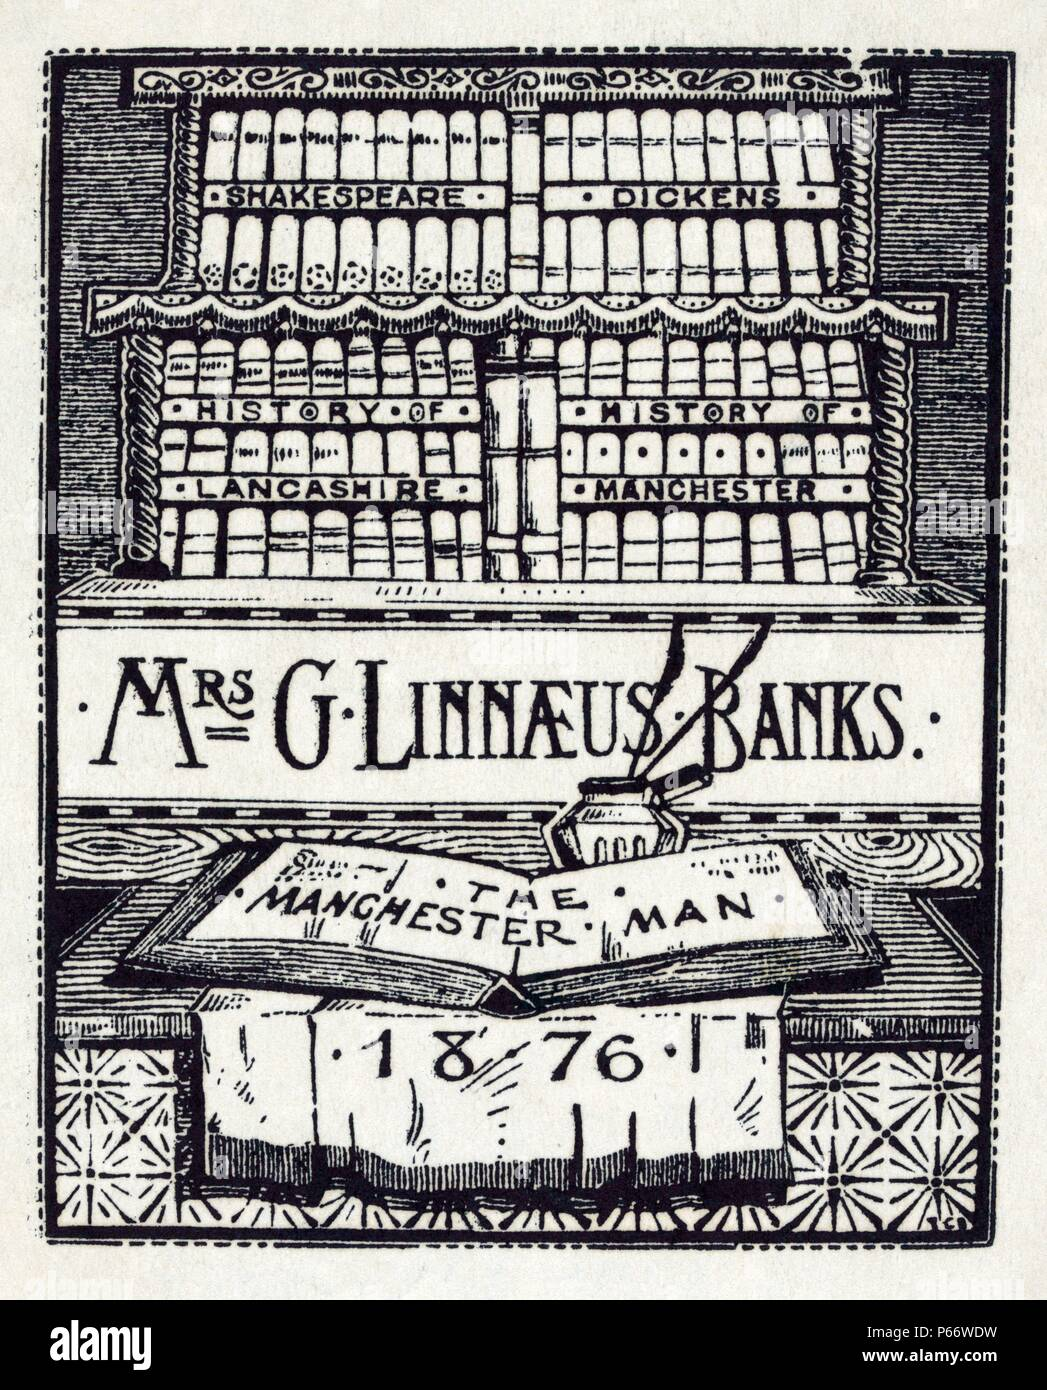 Bookplate of English author, Mrs. G. Linnaeus Banks Published 1876. Print shows books on shelves, with Mrs. Bank's book 'The Manchester Man' opened on a table in the foreground. - Stock Image